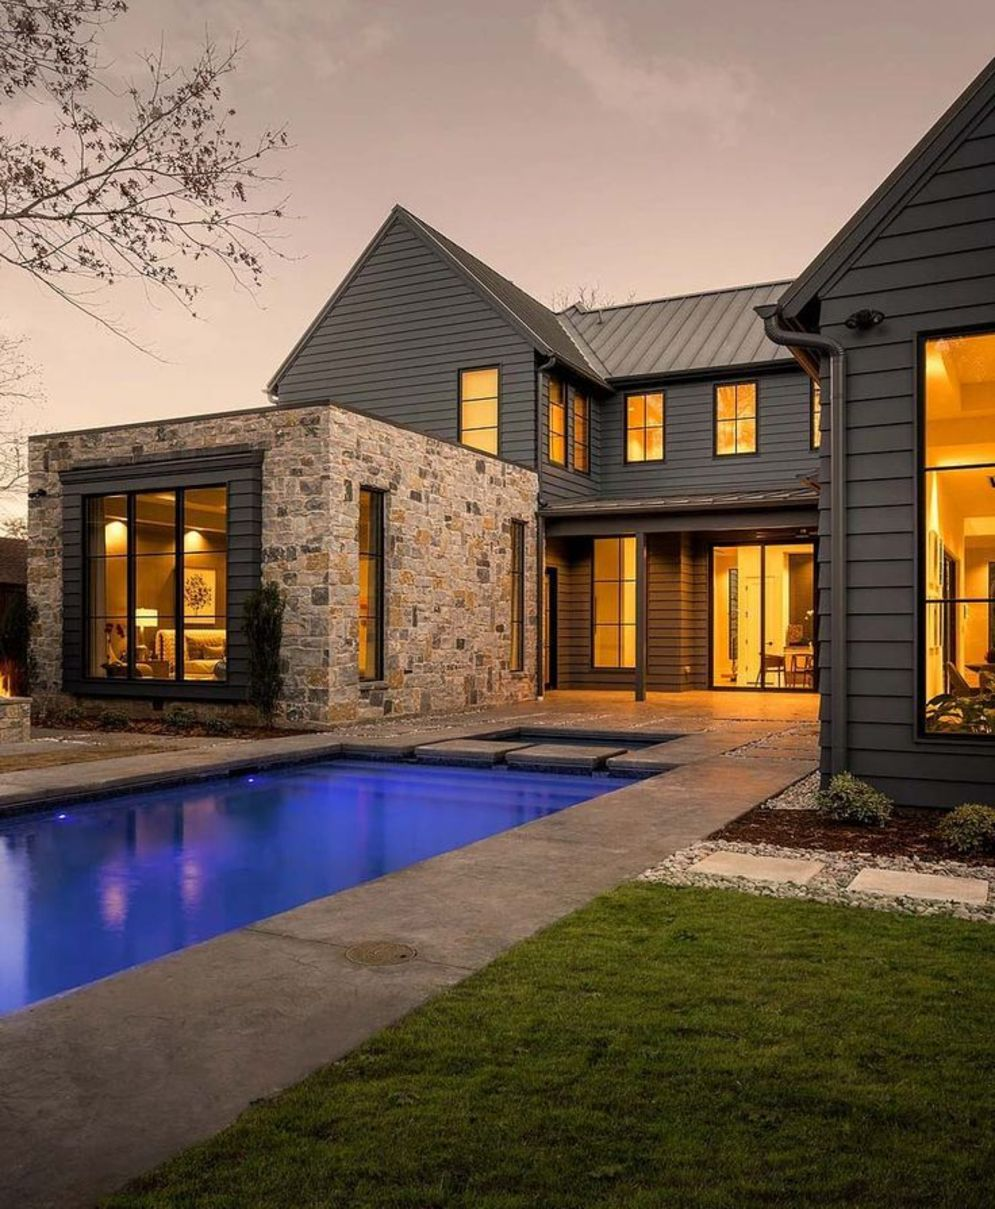 Modern house with new farmhouse exterior design pulling out country charm and warm welcoming display Image 31